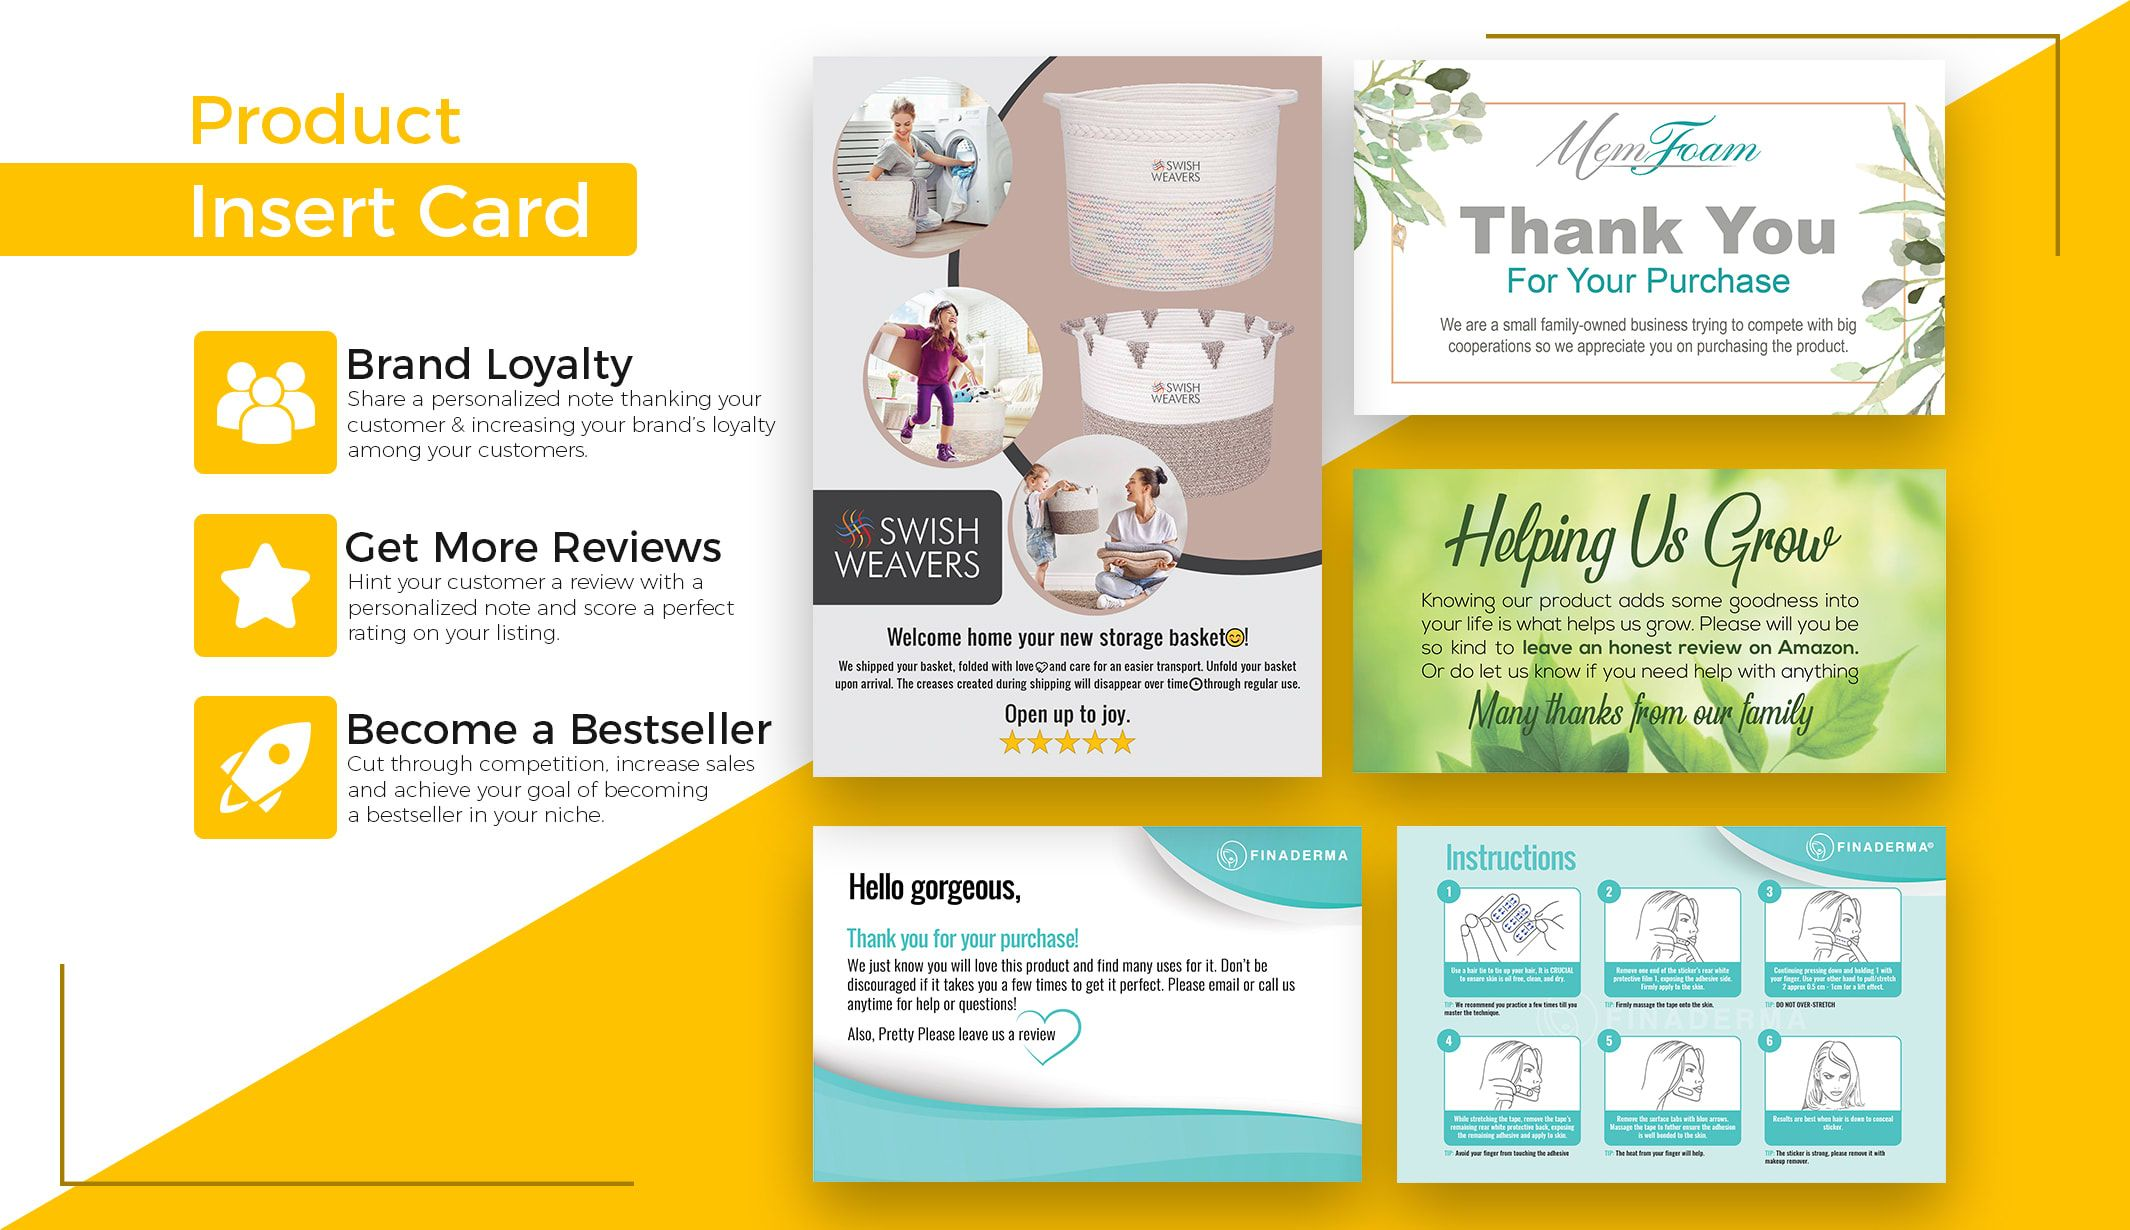 Emerchant I Will Design Professional Amazon Product Insert Card Amazon Thank You Card For 15 On Fiverr Com Free Business Card Templates Make Business Cards Lipsense Business Cards